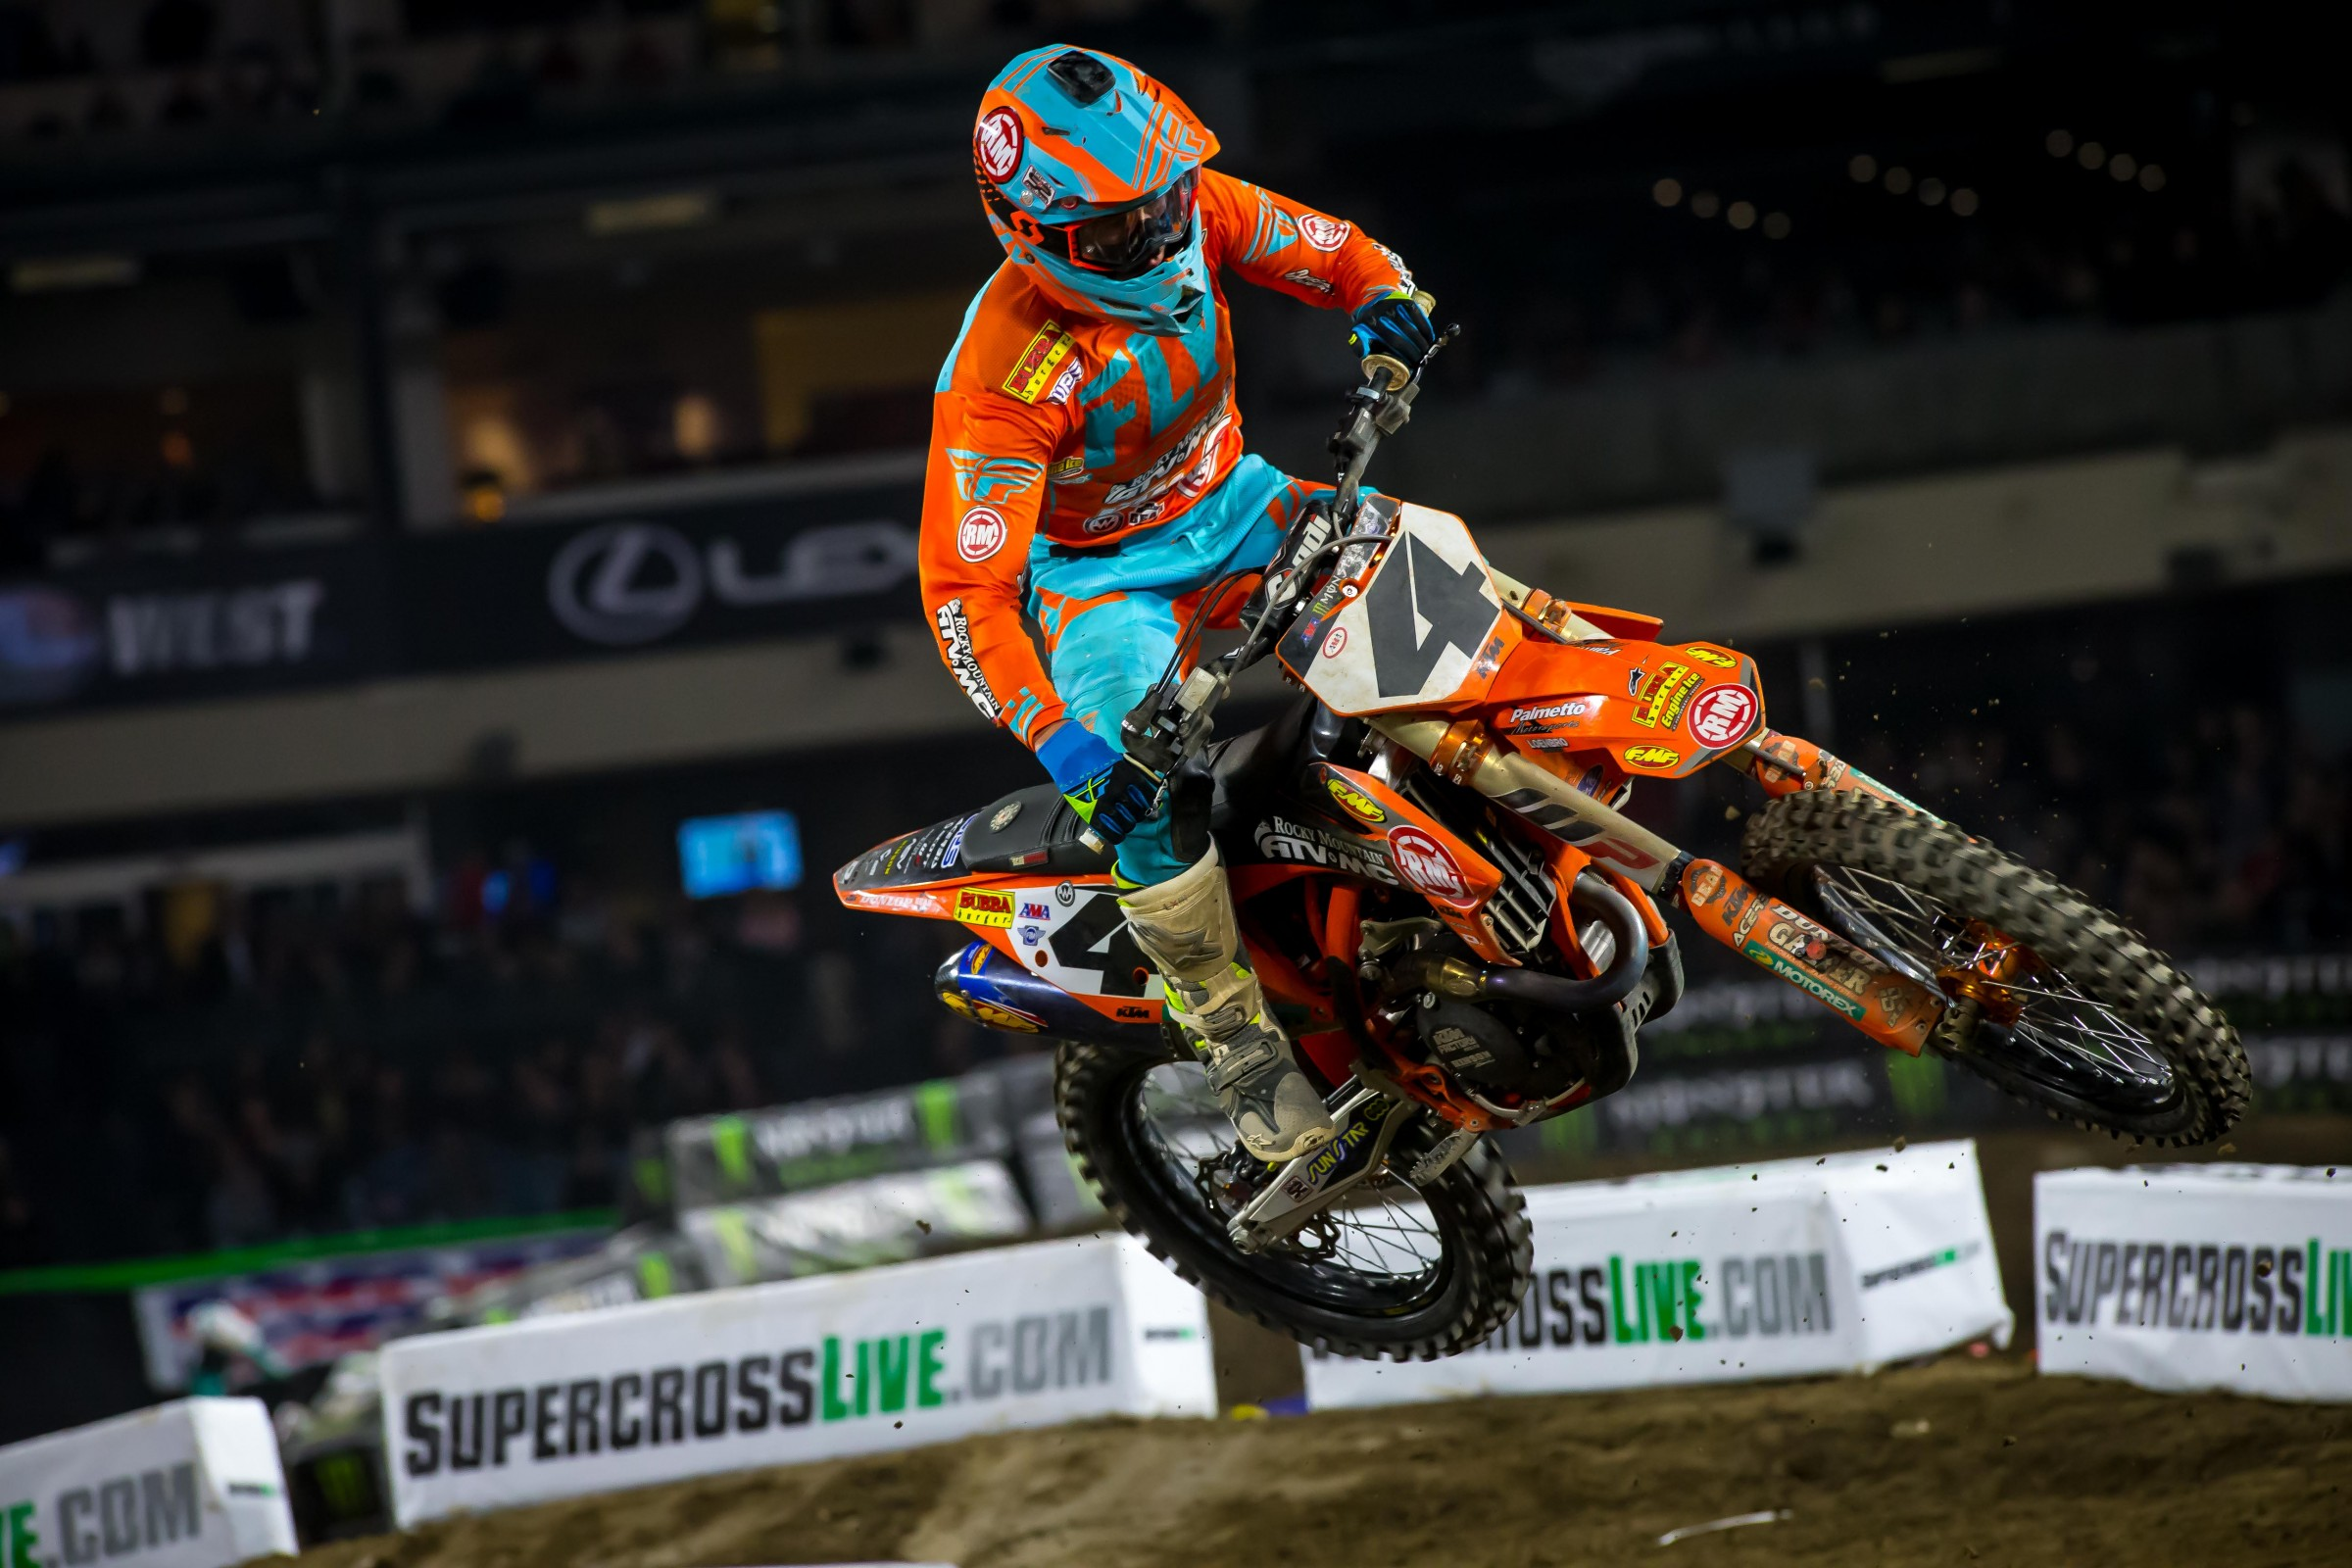 Baggett hopes to turn it around in Houston.